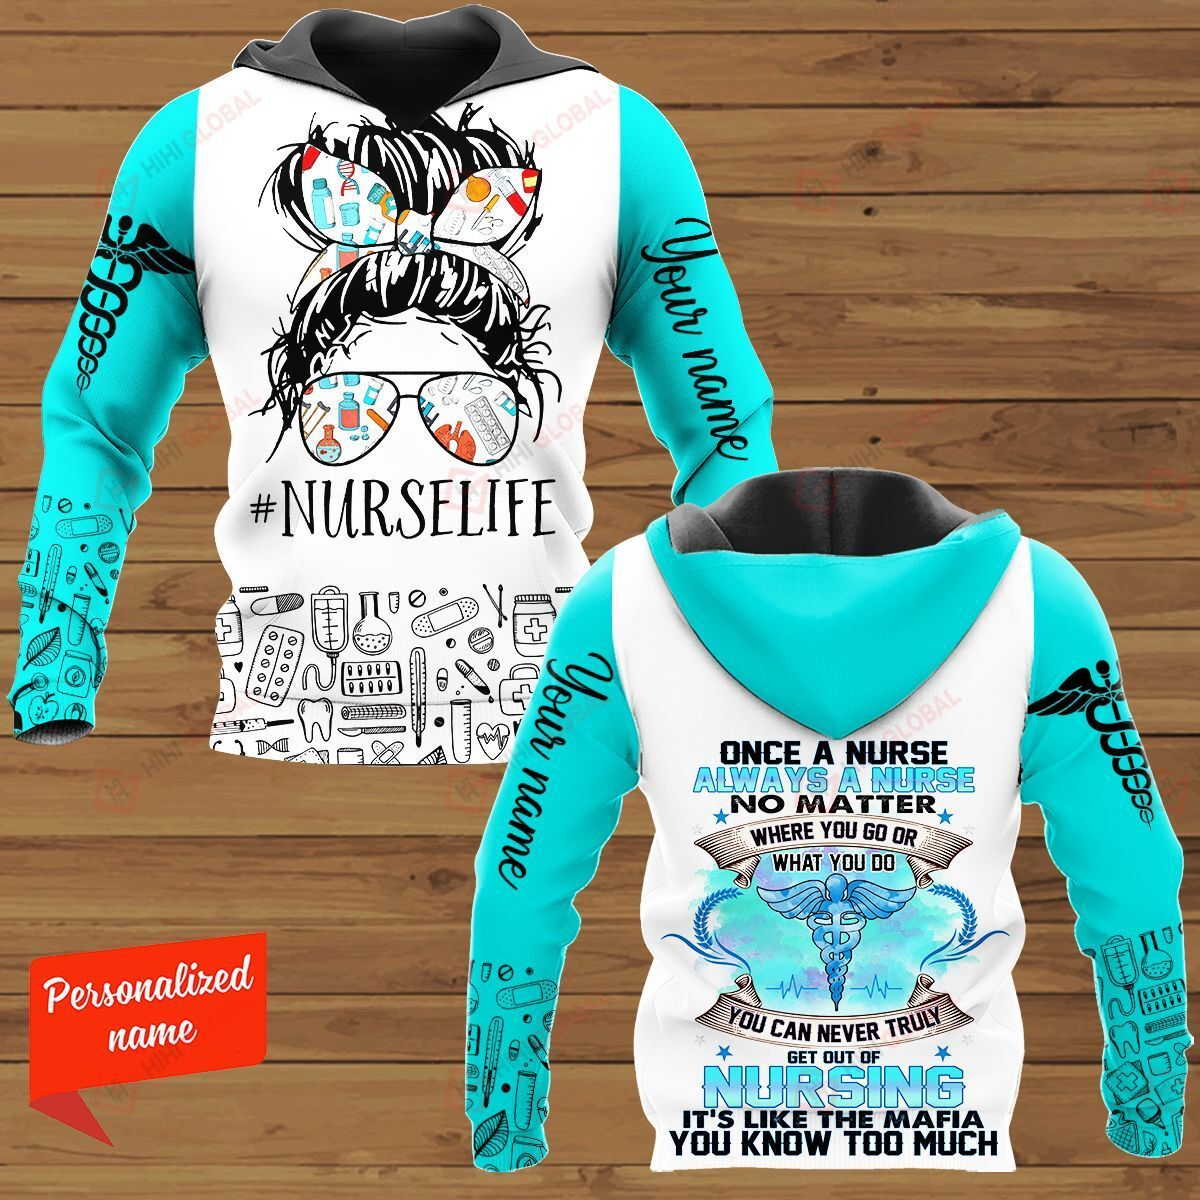 Once A Nurse Always A Nurse No Matter Where You Go or What you do you can never truly get out of Nursing Personalized ALL OVER PRINTED SHIRTS